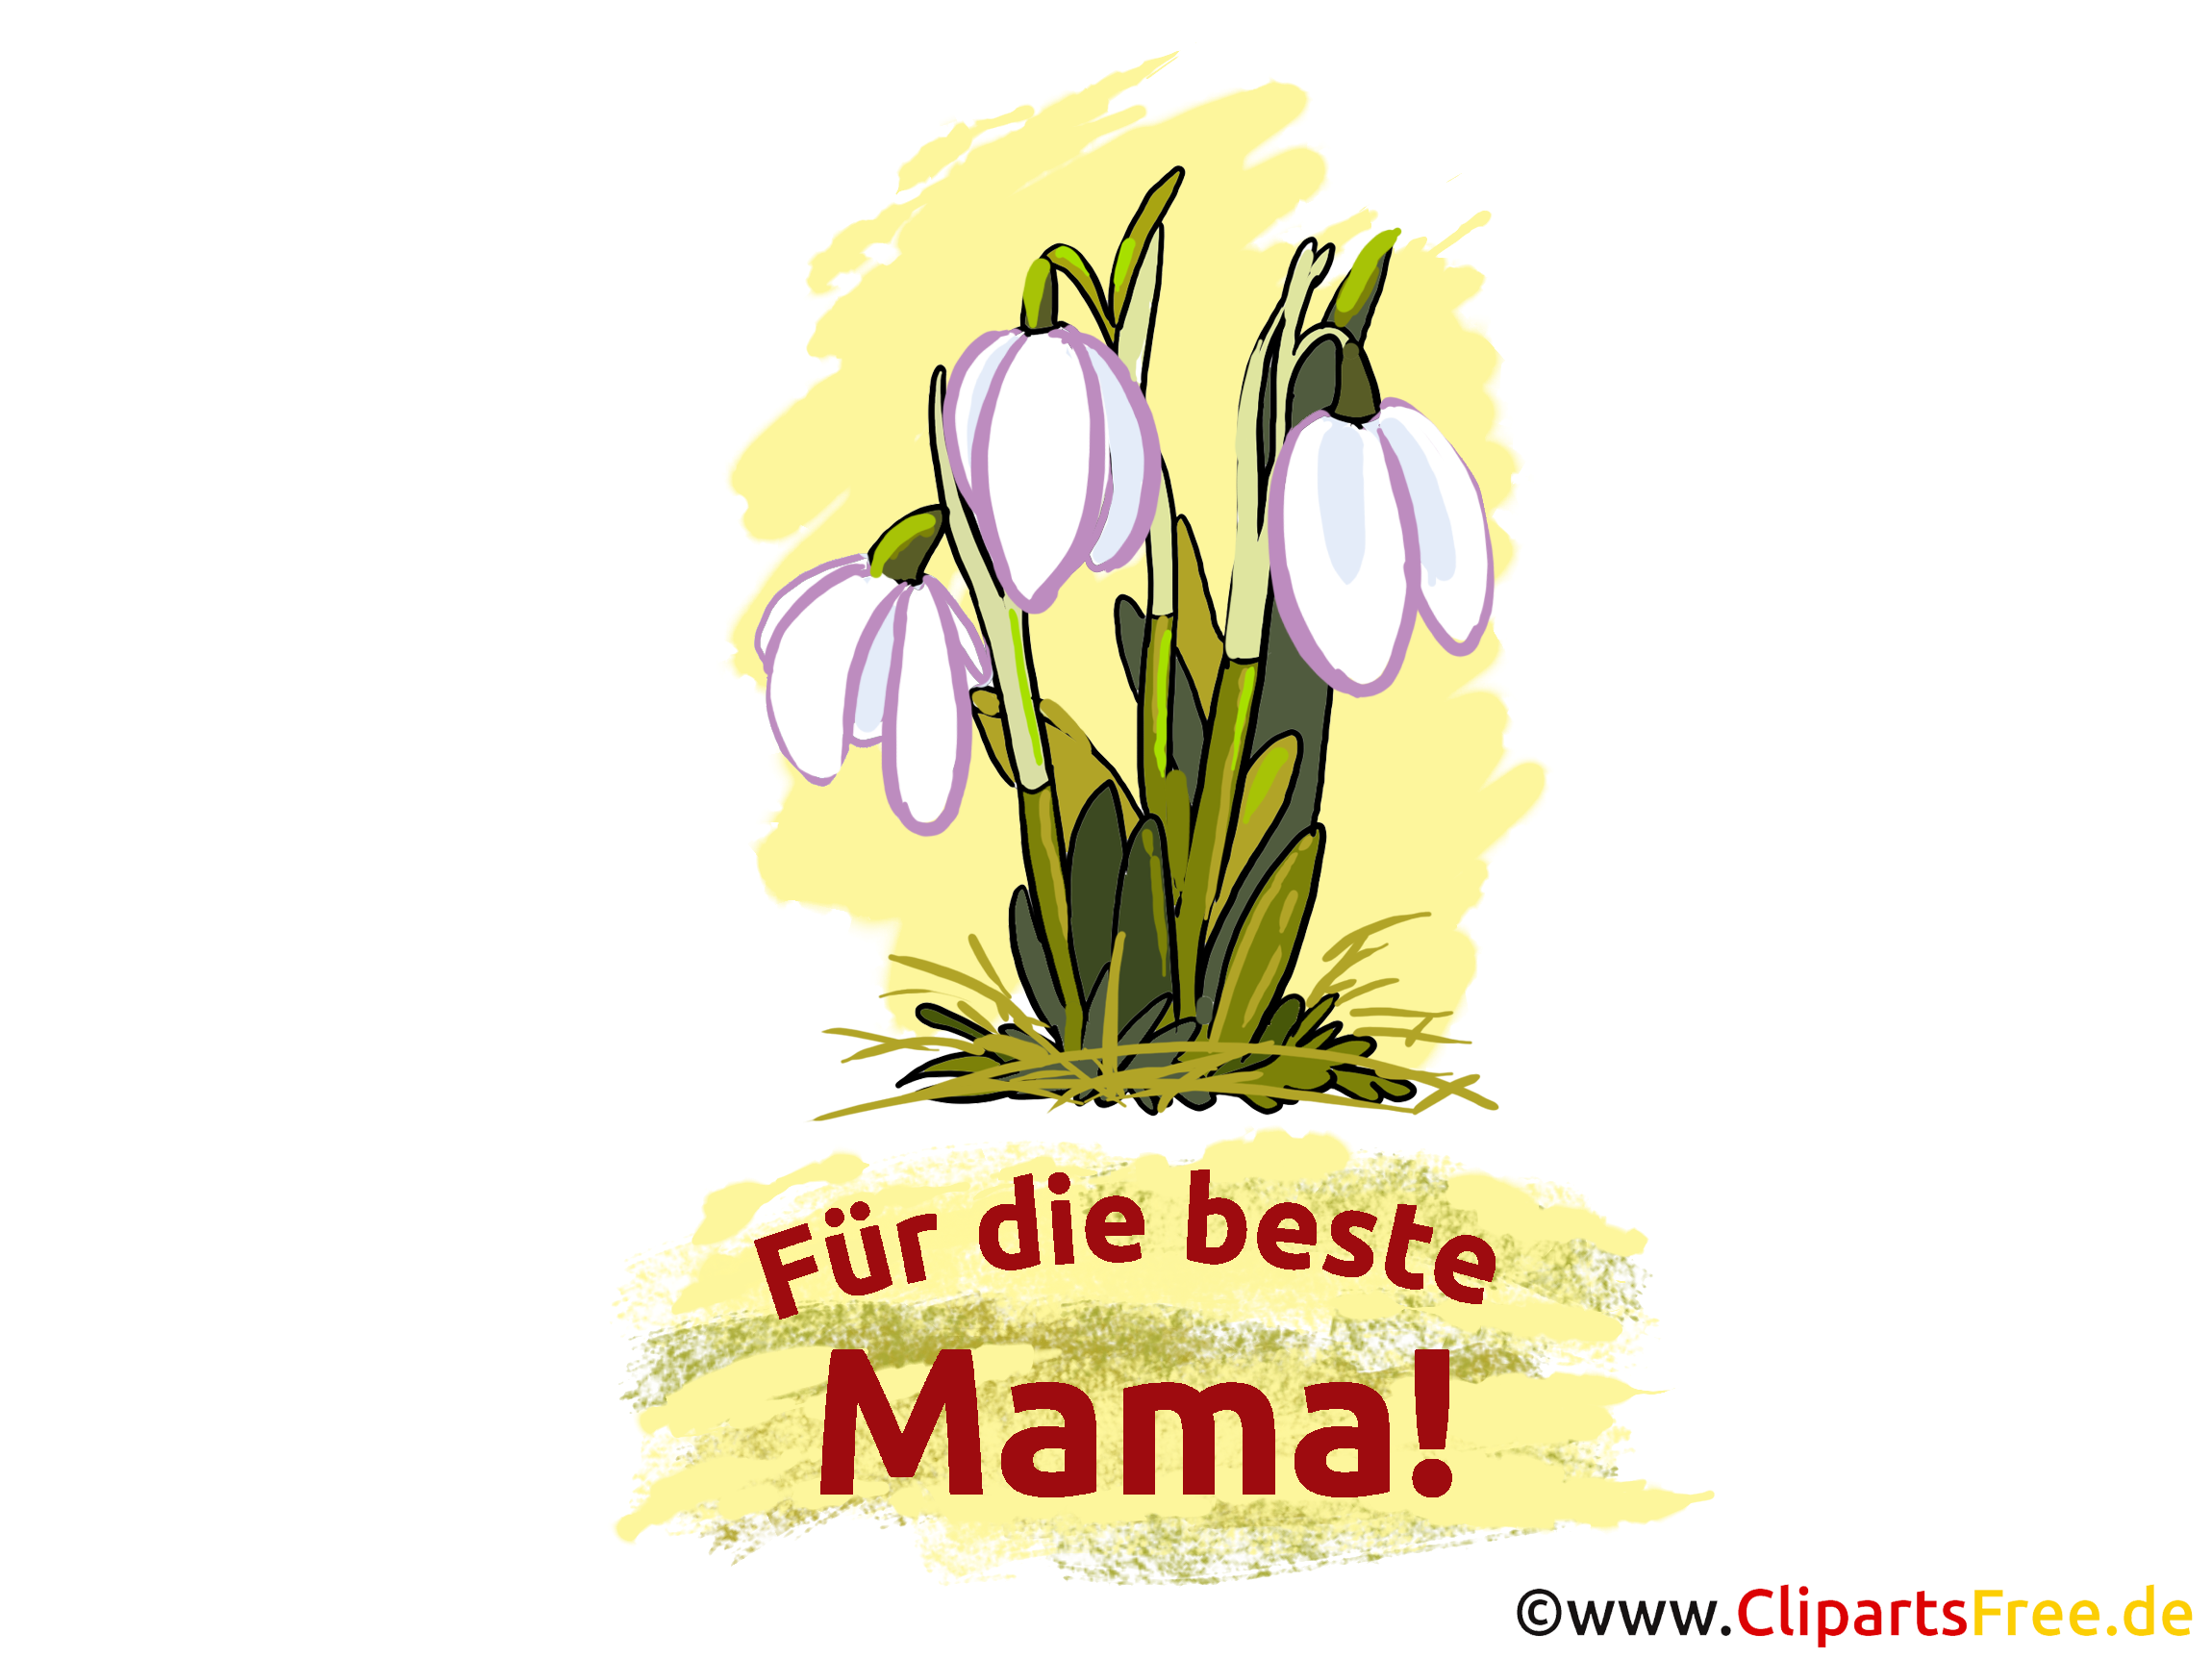 Mother's day card, image, message with flowers